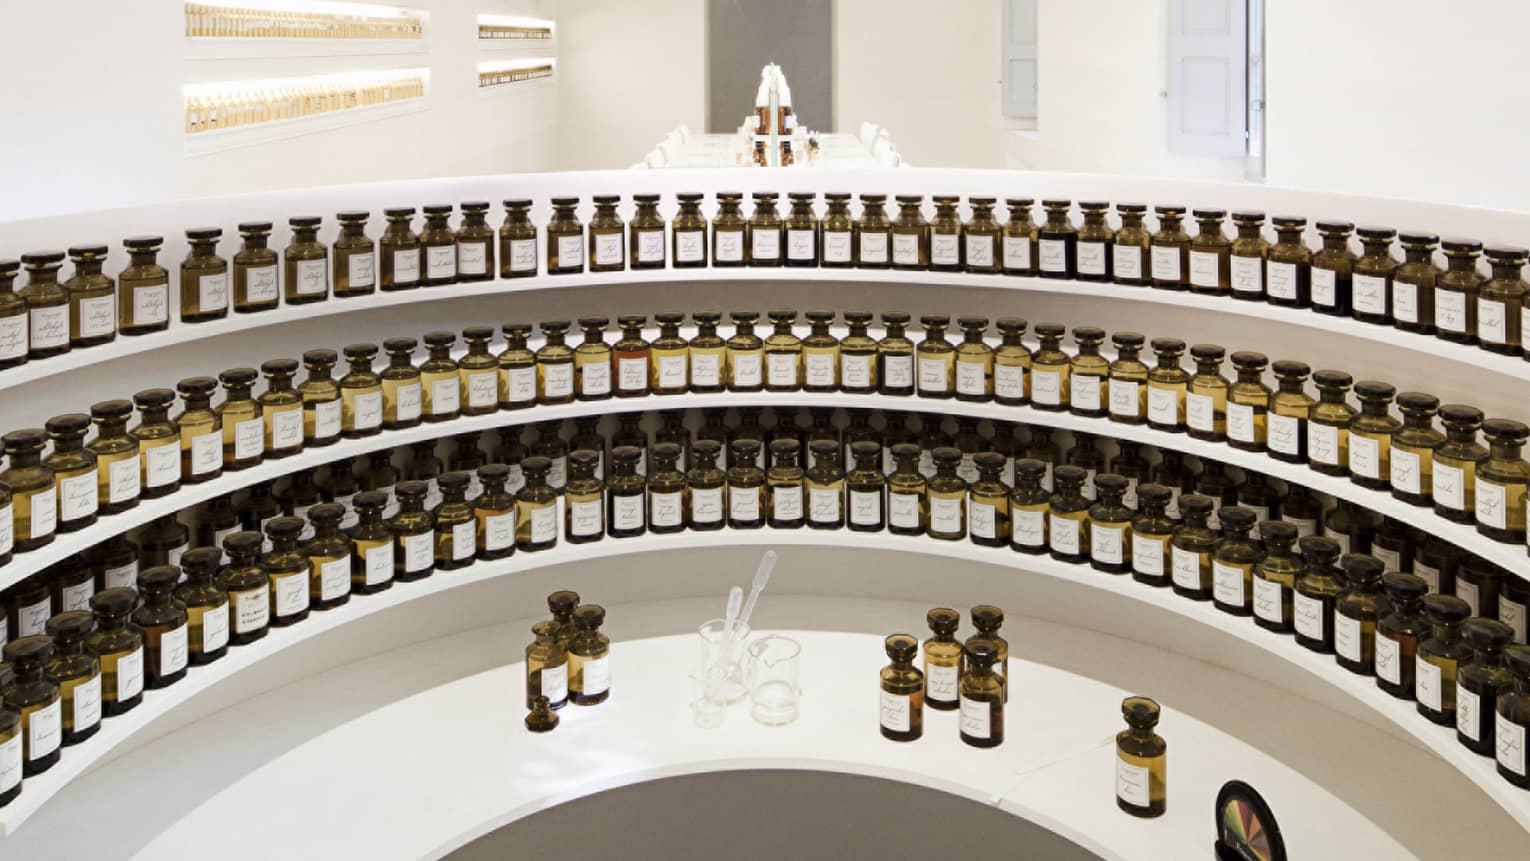 Curved white shelves with small glass tincture bottles at the Fragonard perfume factory